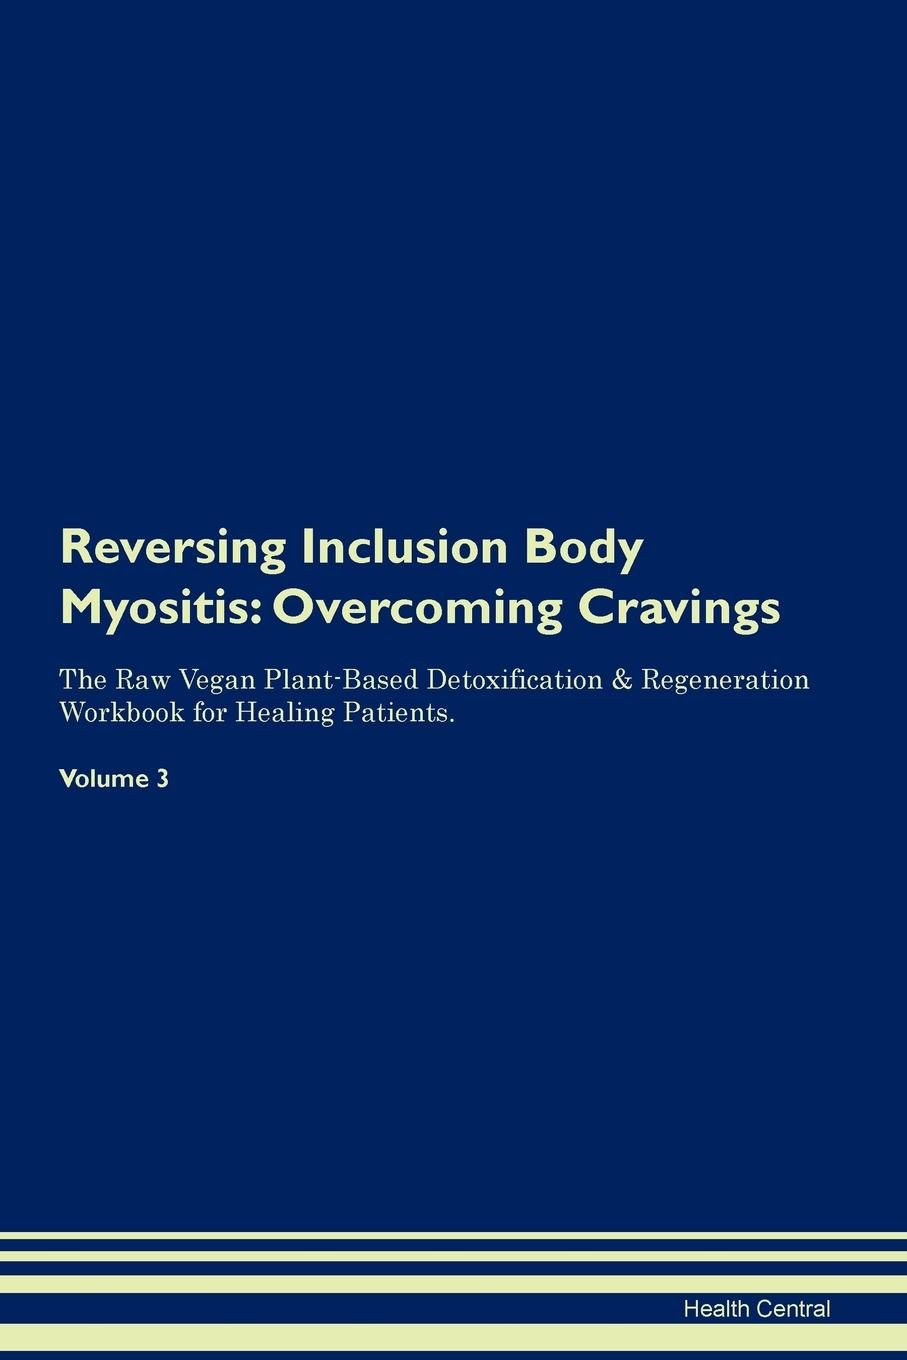 Health Central Reversing Inclusion Body Myositis. Overcoming Cravings The Raw Vegan Plant-Based Detoxification . Regeneration Workbook for Healing Patients. Volume 3 engel w king muscle aging inclusion body myositis and myopathies